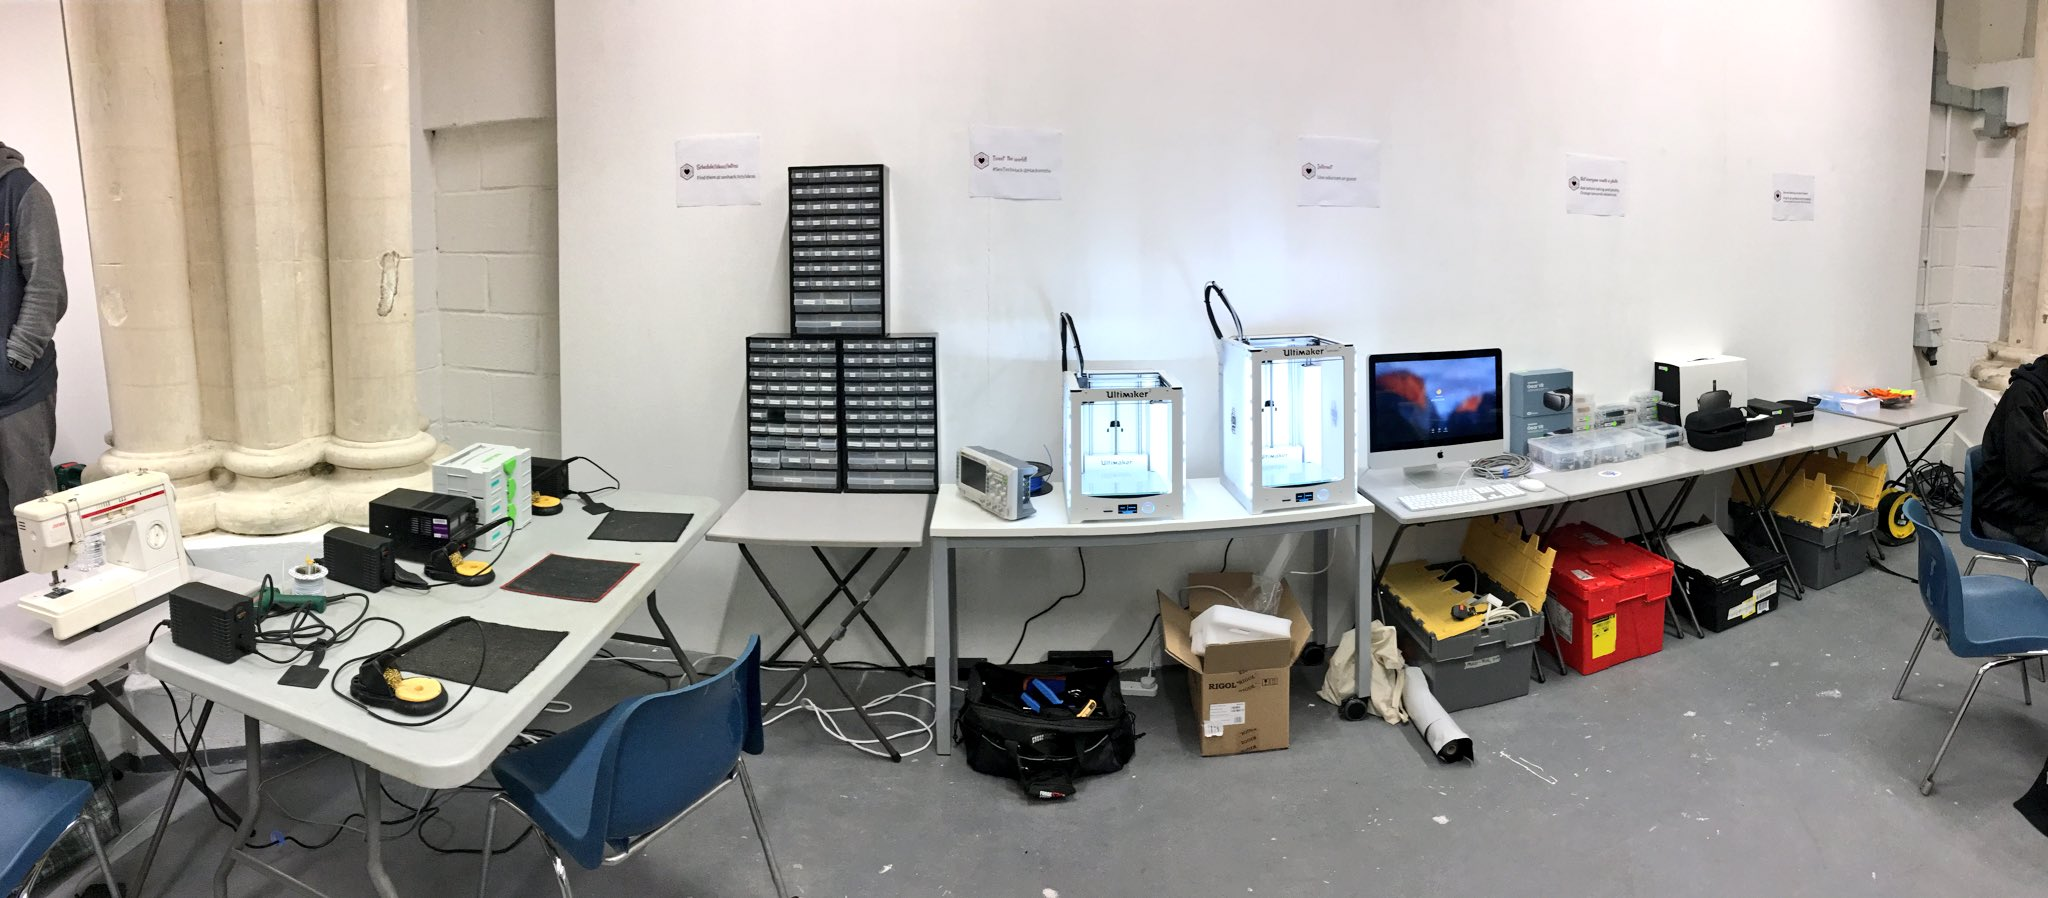 Hardware station is set up. @hacksmiths #SexTechHack https://t.co/bJsyp0x0cQ